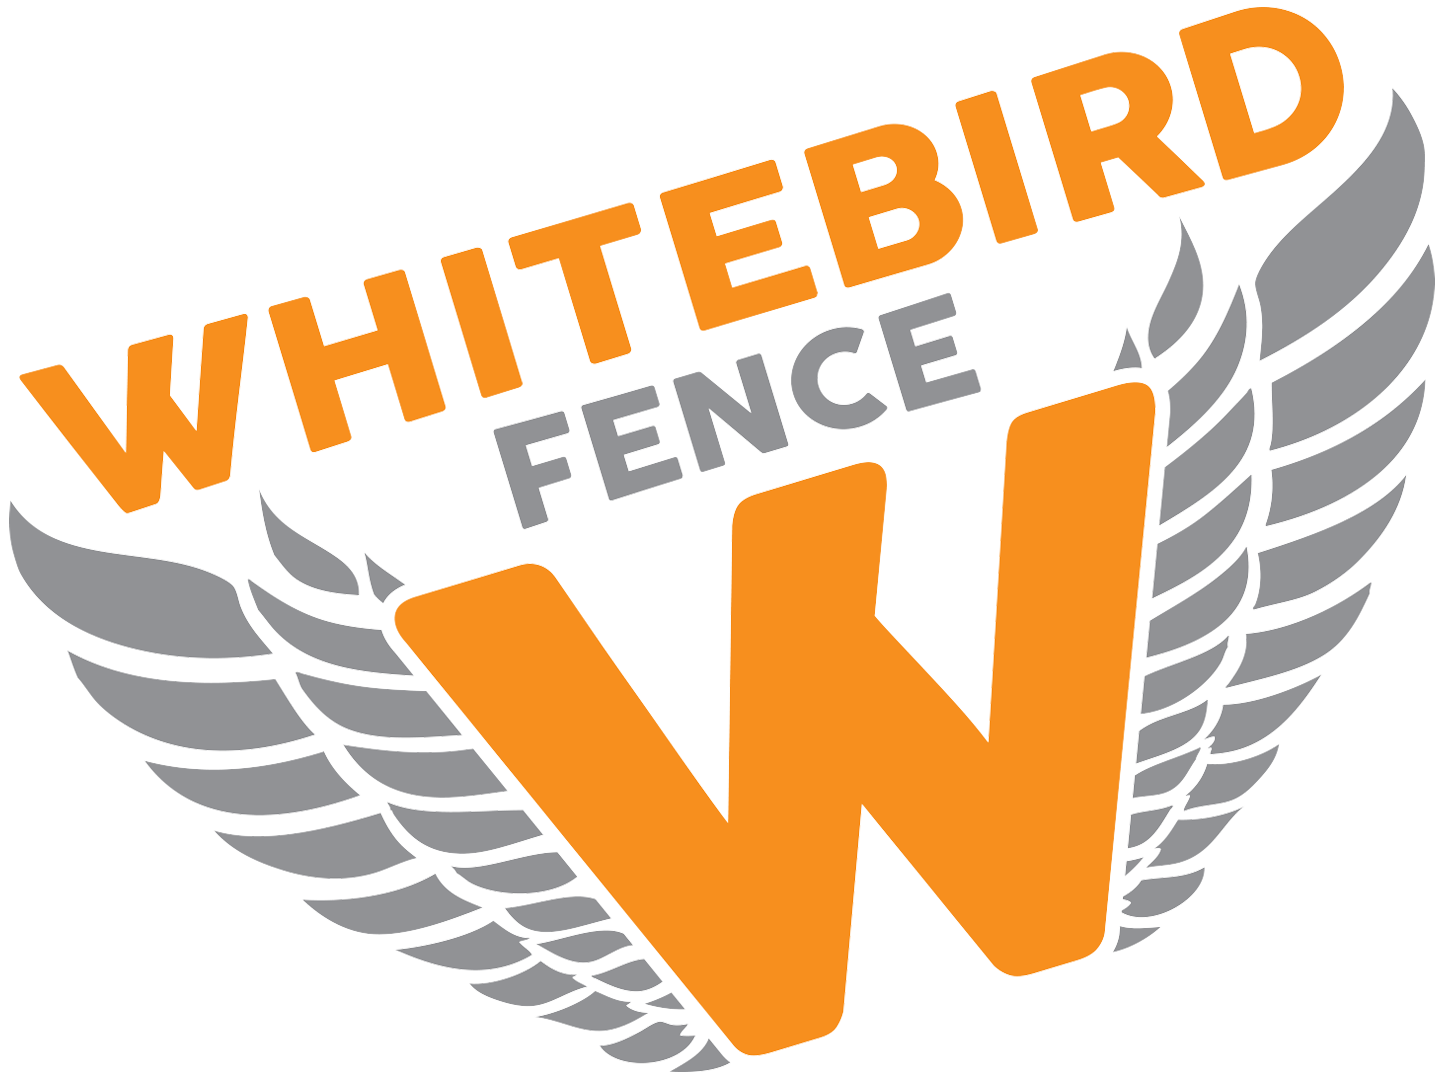 Wood Privacy & Ornamental Iron, New or Repair Work – Whitebird Fence